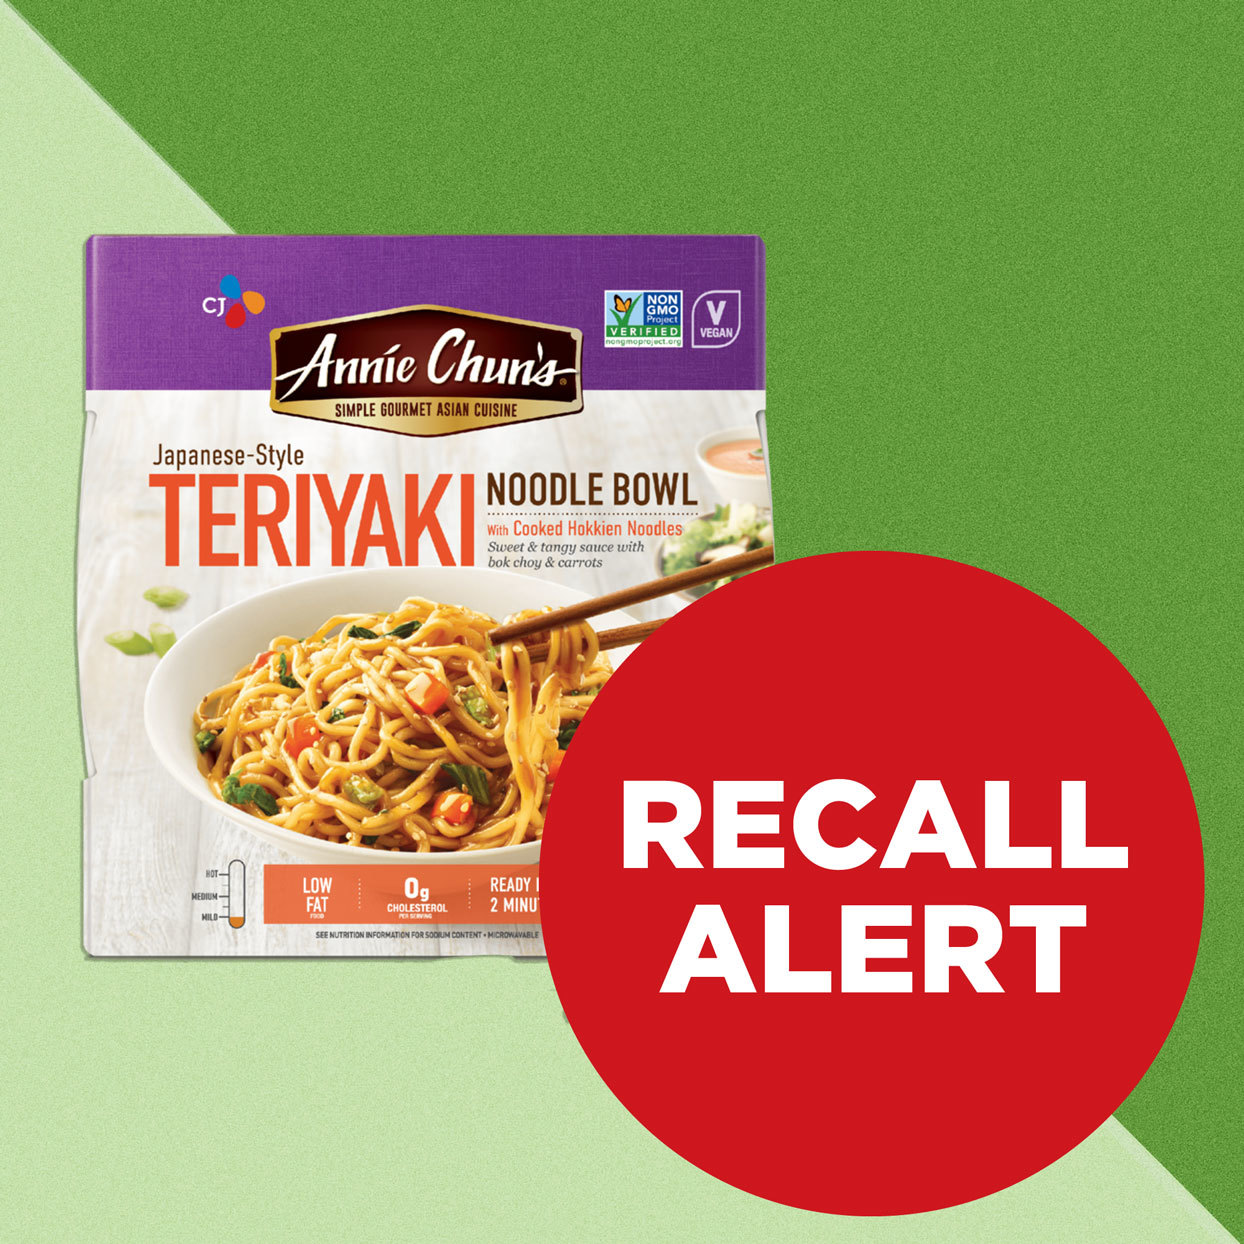 Annie Chun's Noodle Bowls recalled